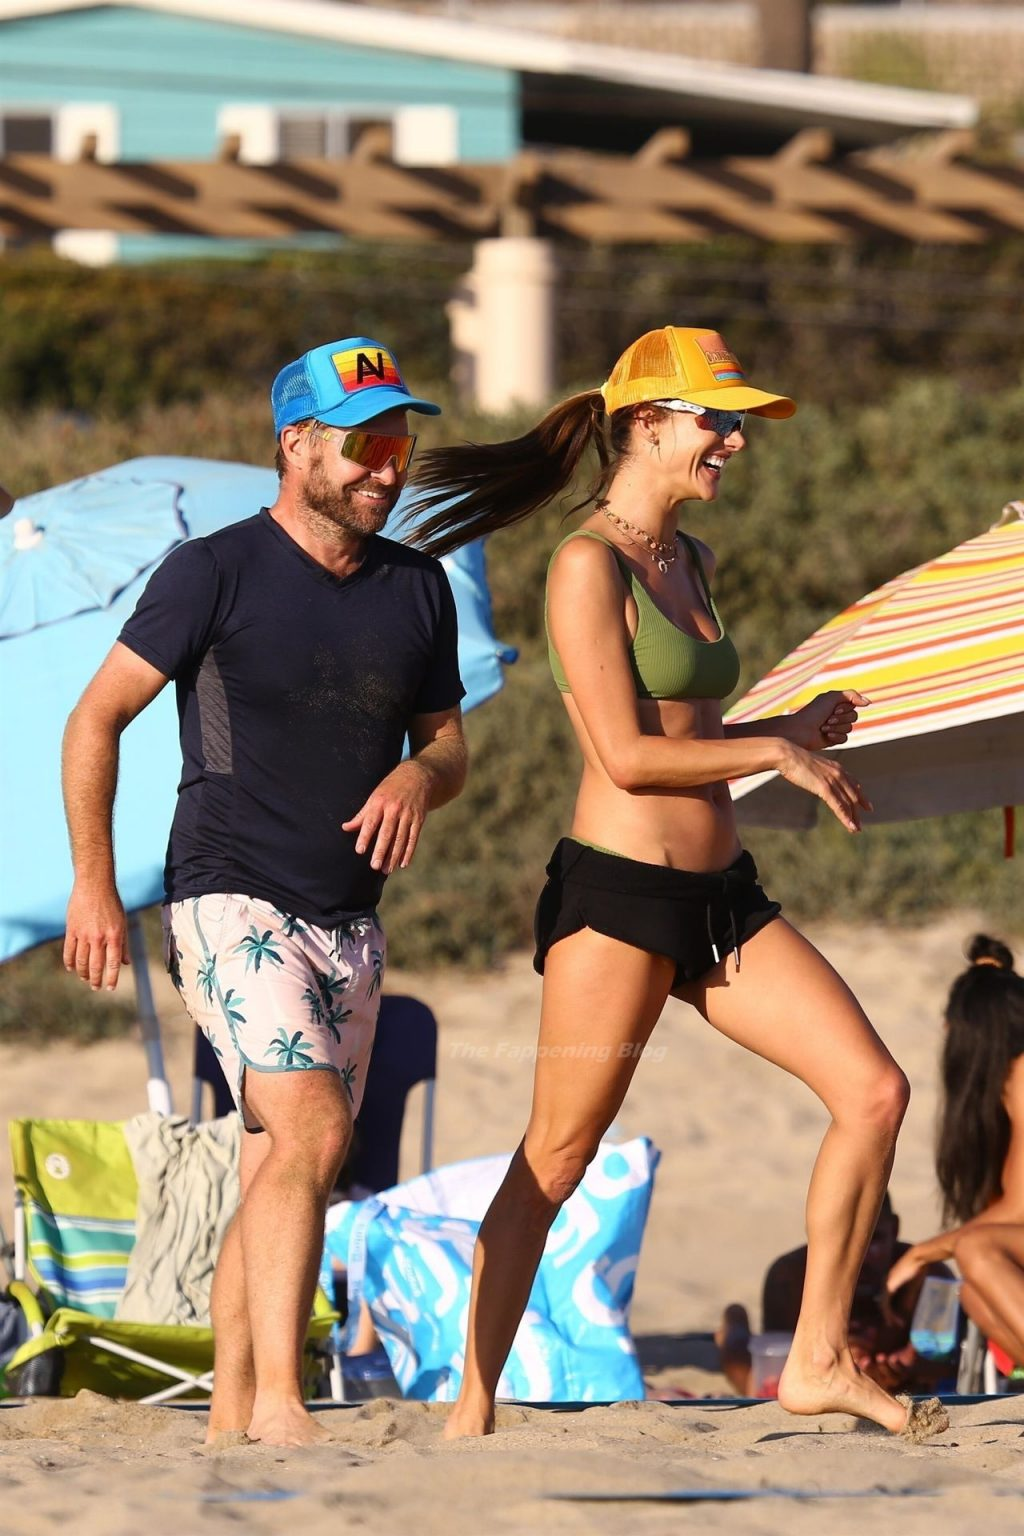 Alessandra Ambrosio Shows Her Sexy Figure on the Beach (122 New Photos)